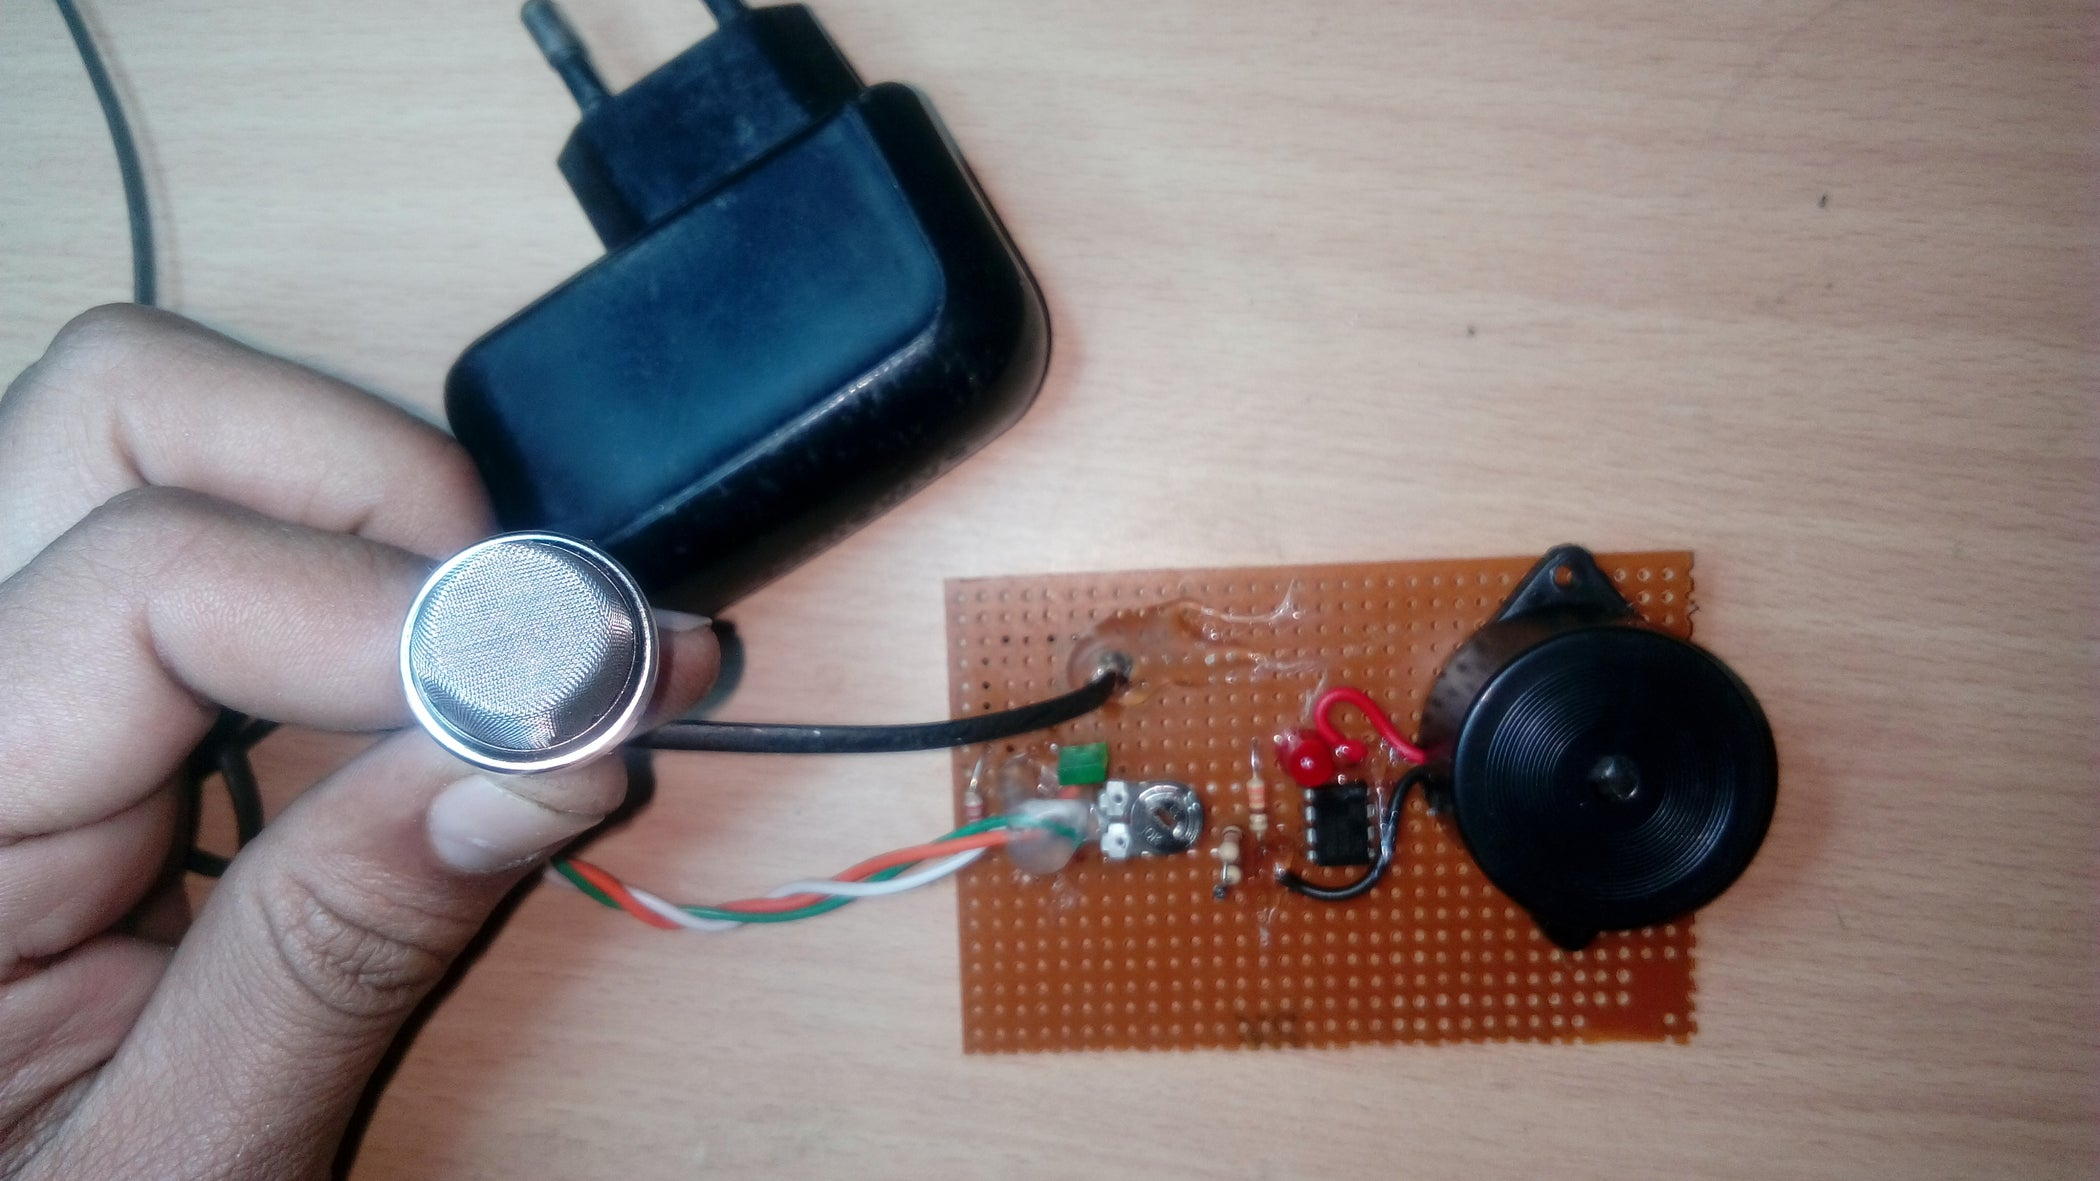 Lpg Leakage Alarm 5 Steps Electronics Circuit Free Electronic Timer Circuits With 4060b